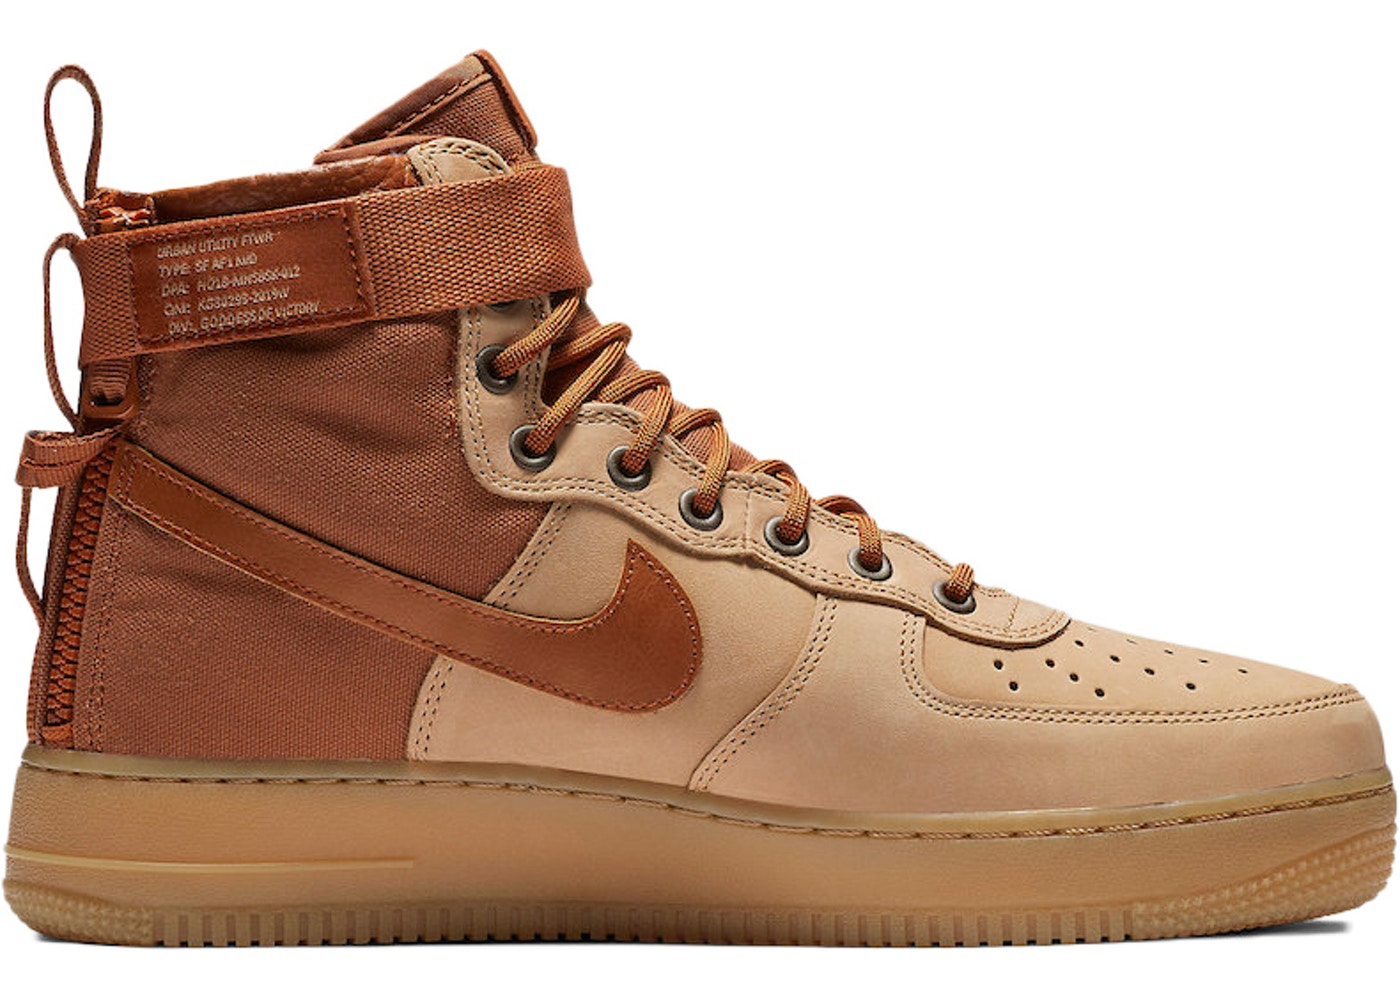 ナイキ NIKE エア ミッド プレミアム スニーカー 【 AIR PREMIUM SF FORCE 1 MID PRALINE GUM LIGHT BROWN DARK RUSSET 】 メンズ